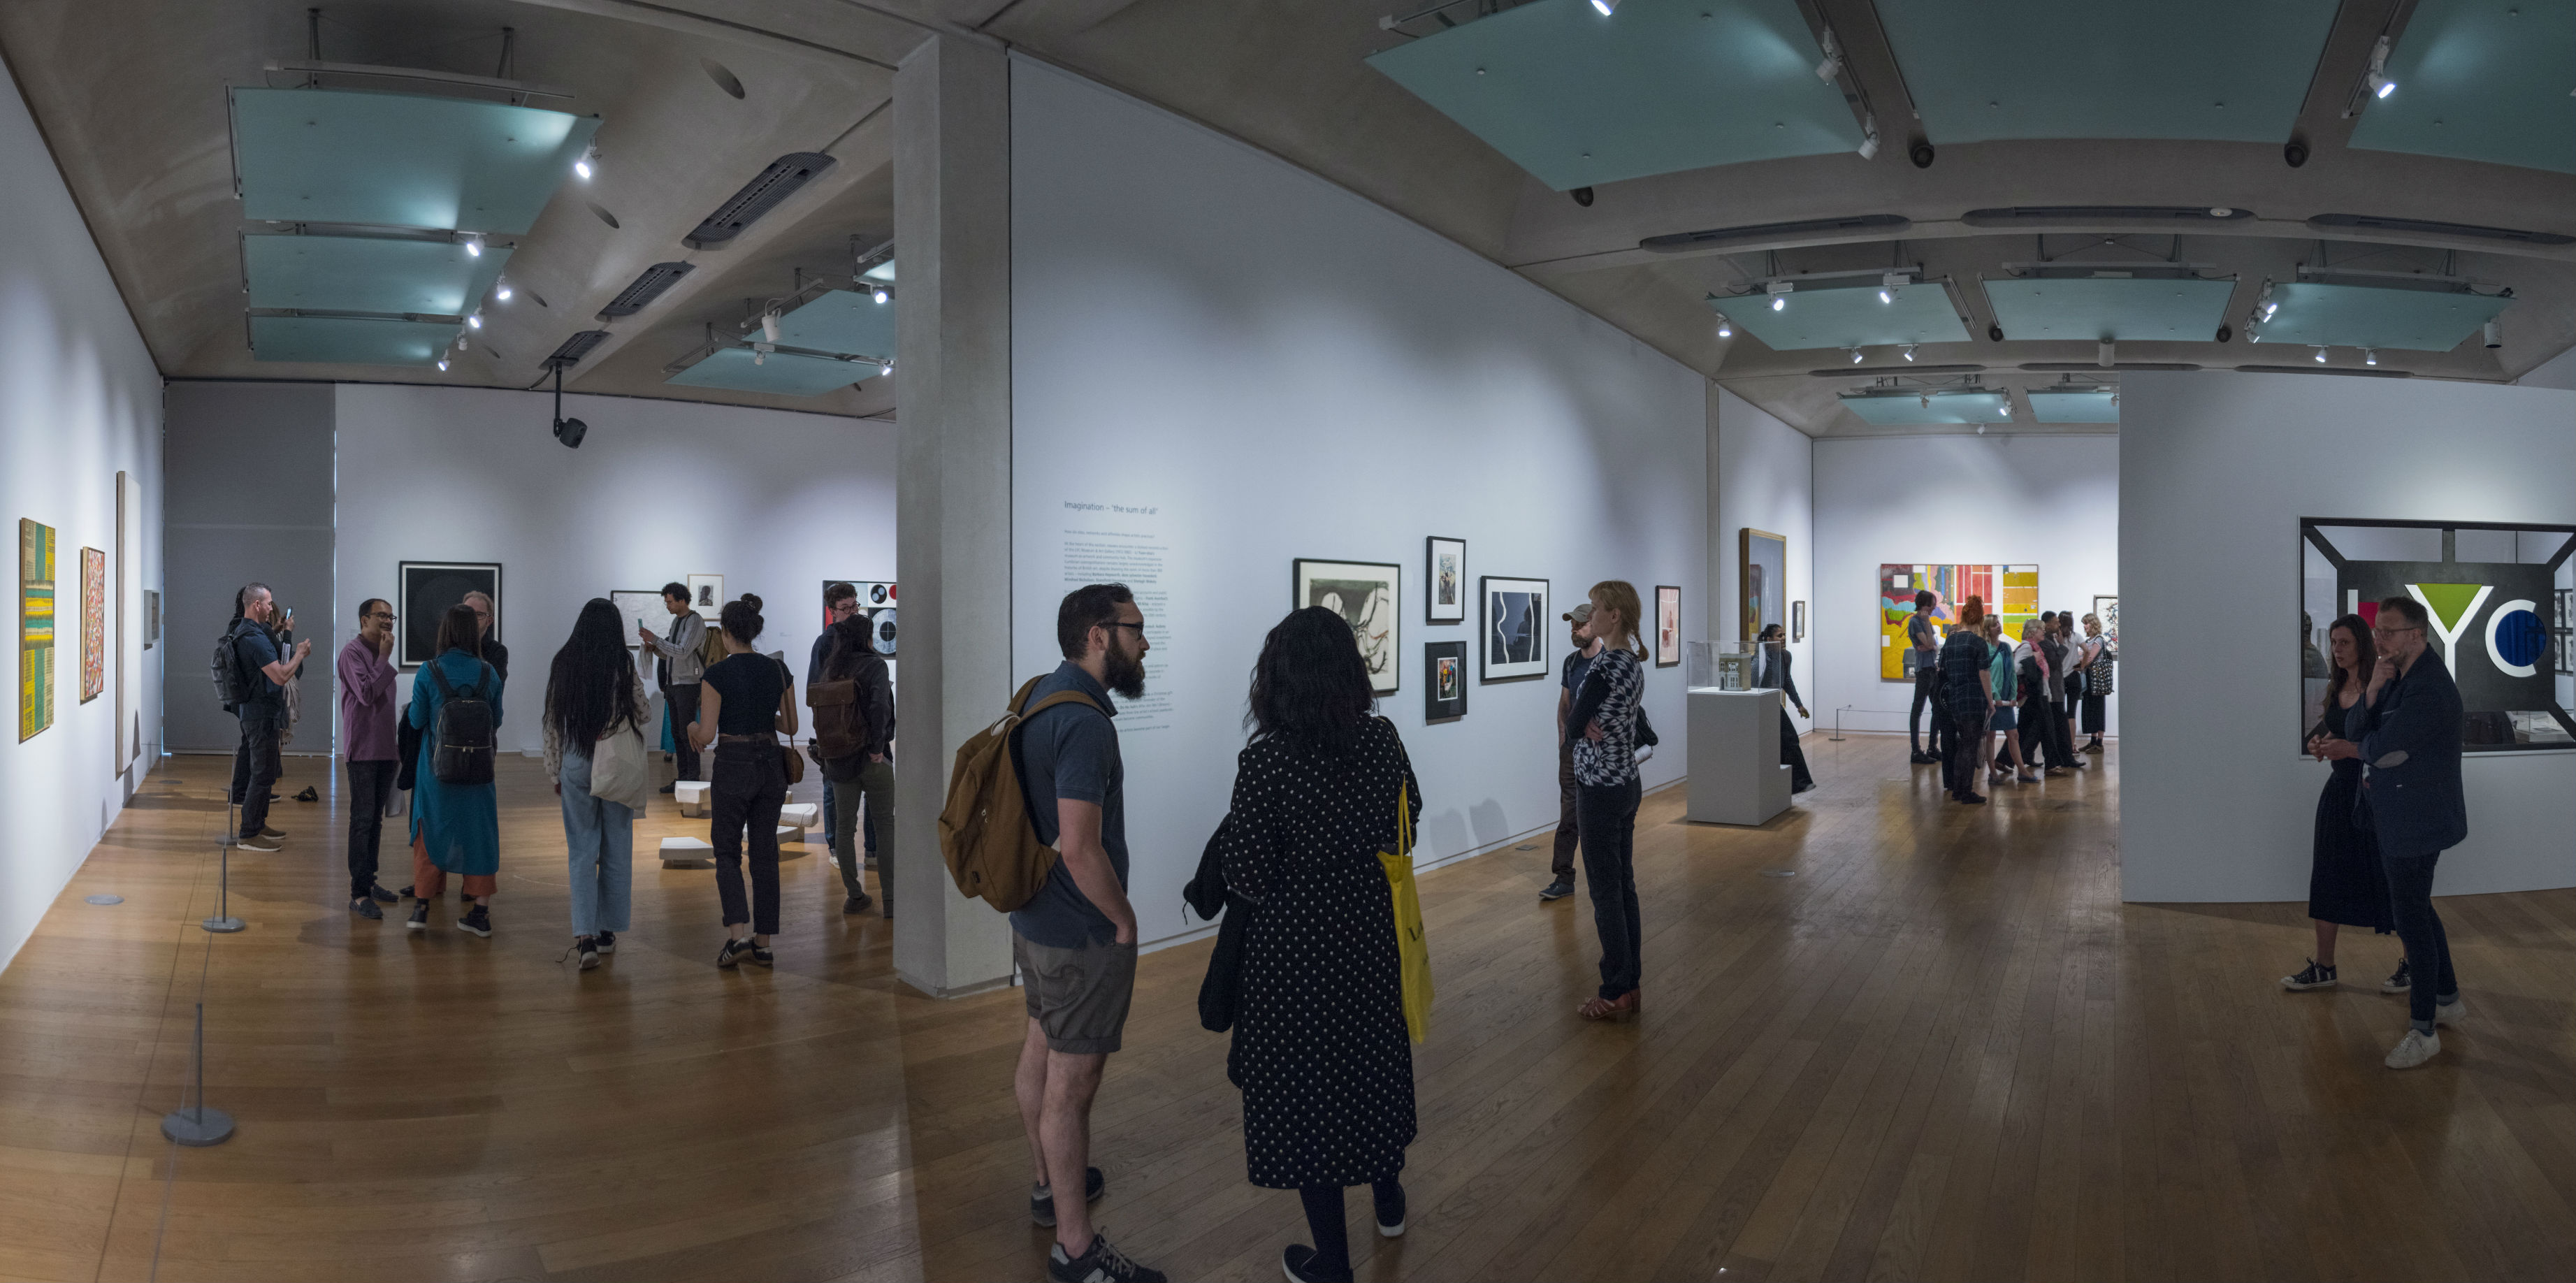 People looking at artworks in an exhibition